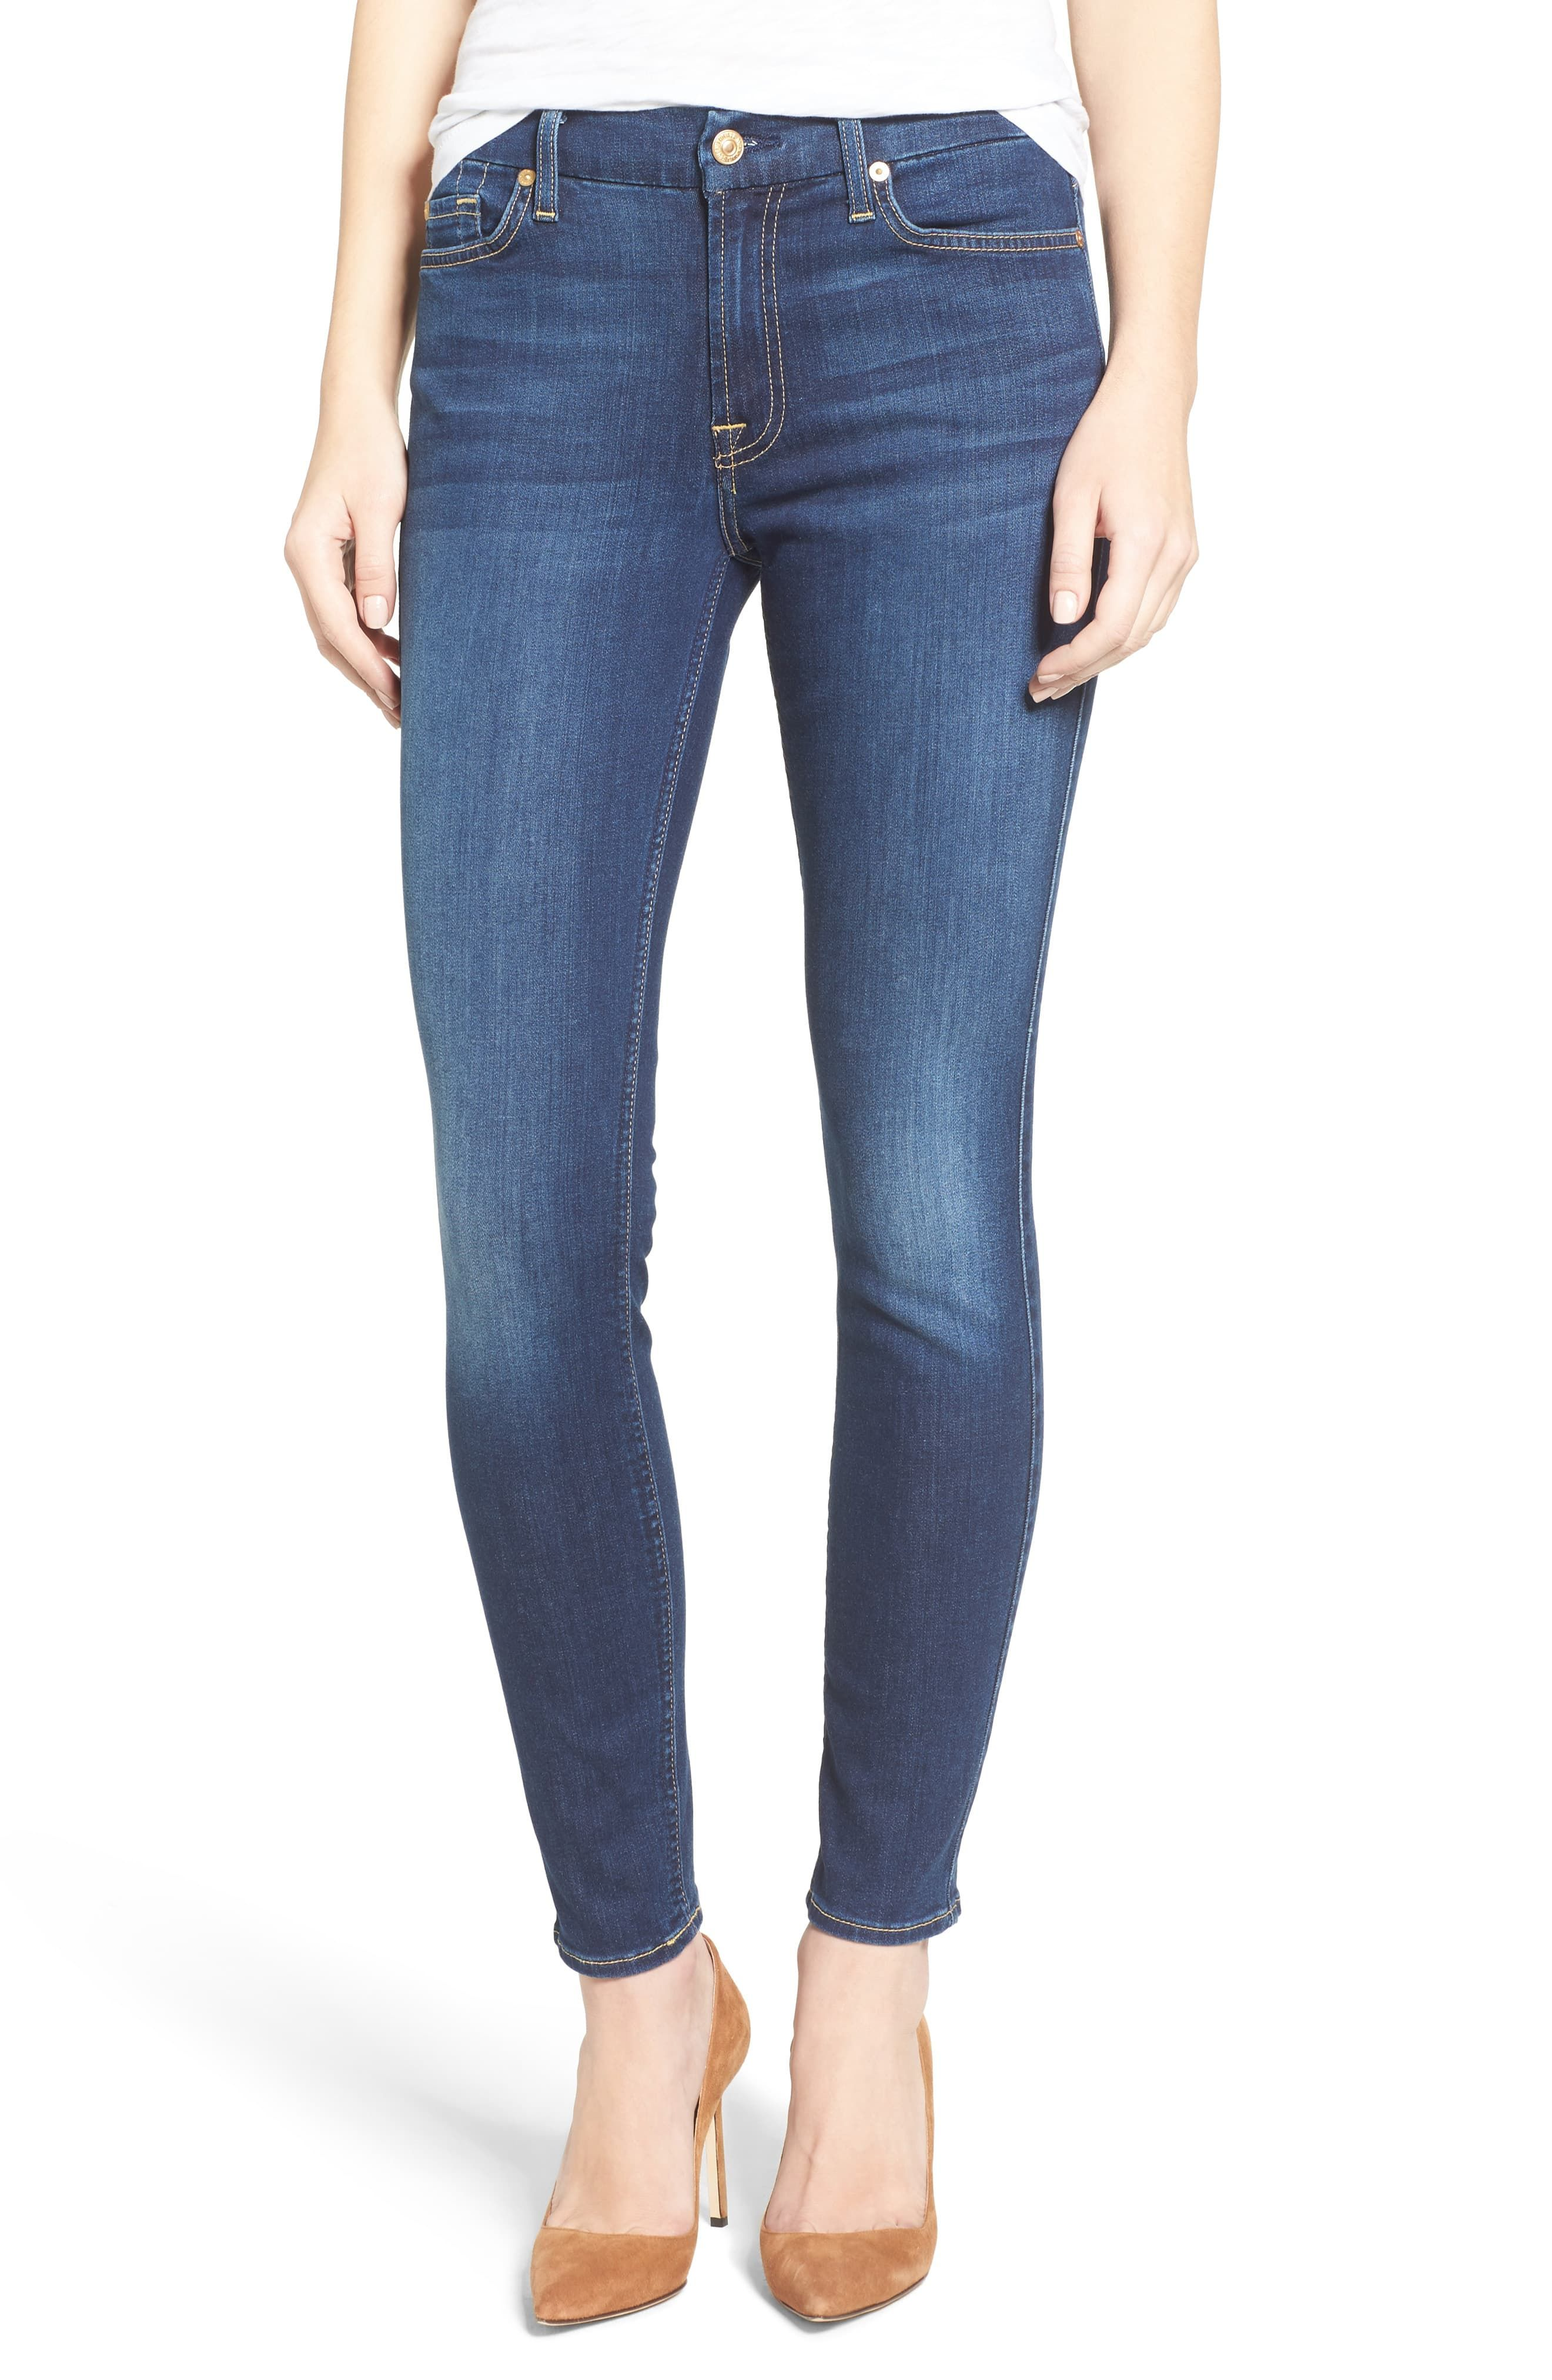 7 For All Mankind B Air Ankle Skinny Jeans Skinny Jeans Style